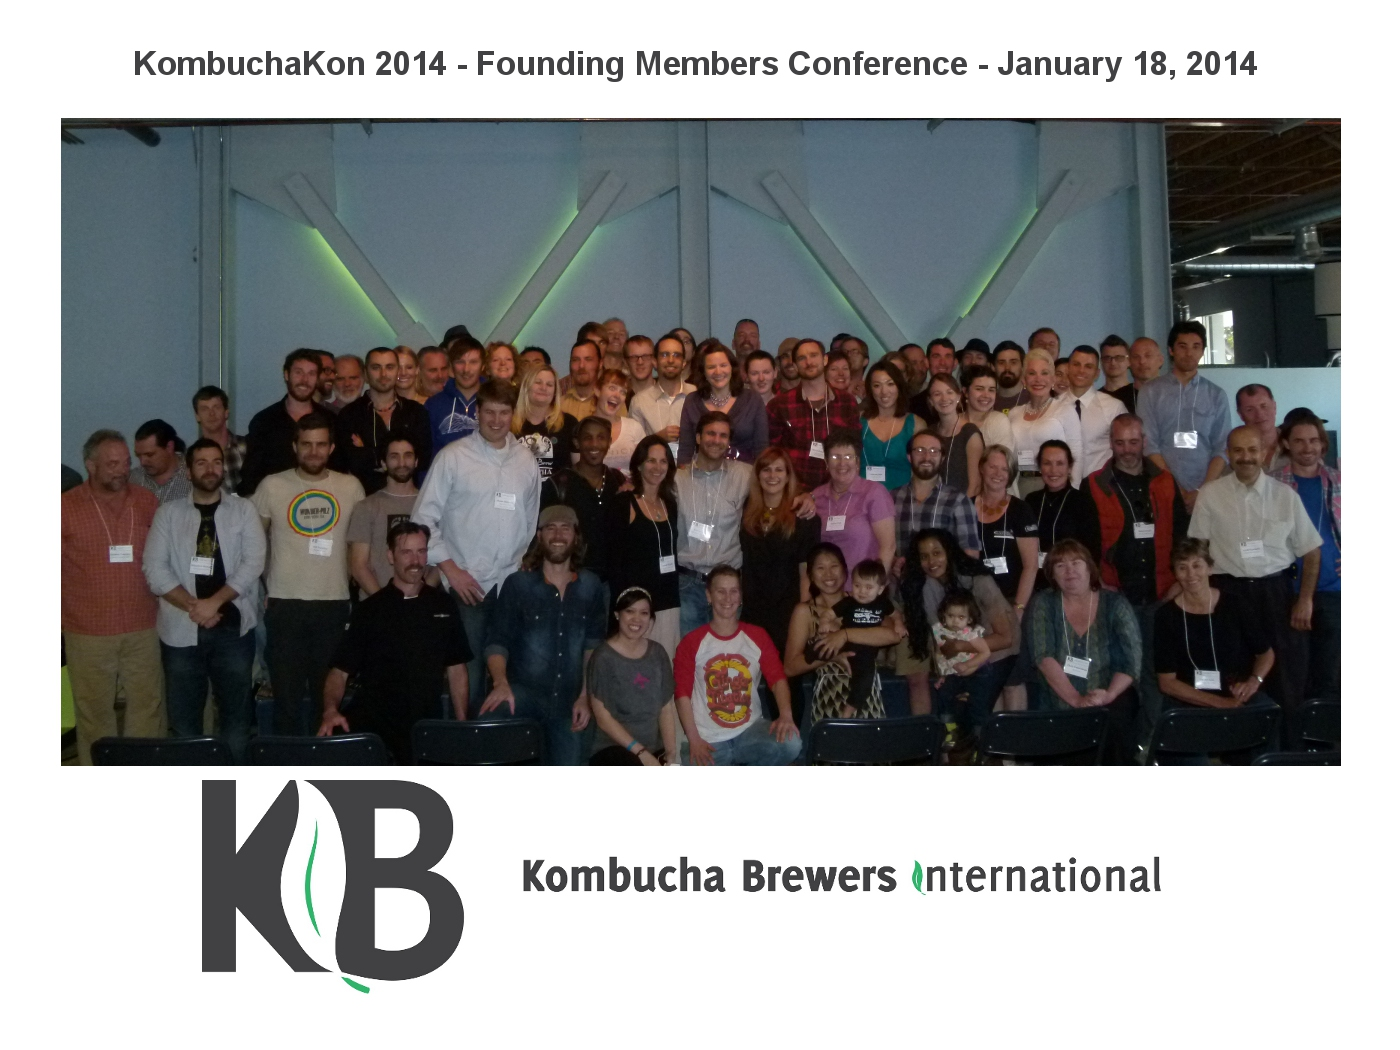 Kombucha-Brewers-International-First-Annual-Meeting-Official-Member-Photo-1.18.14